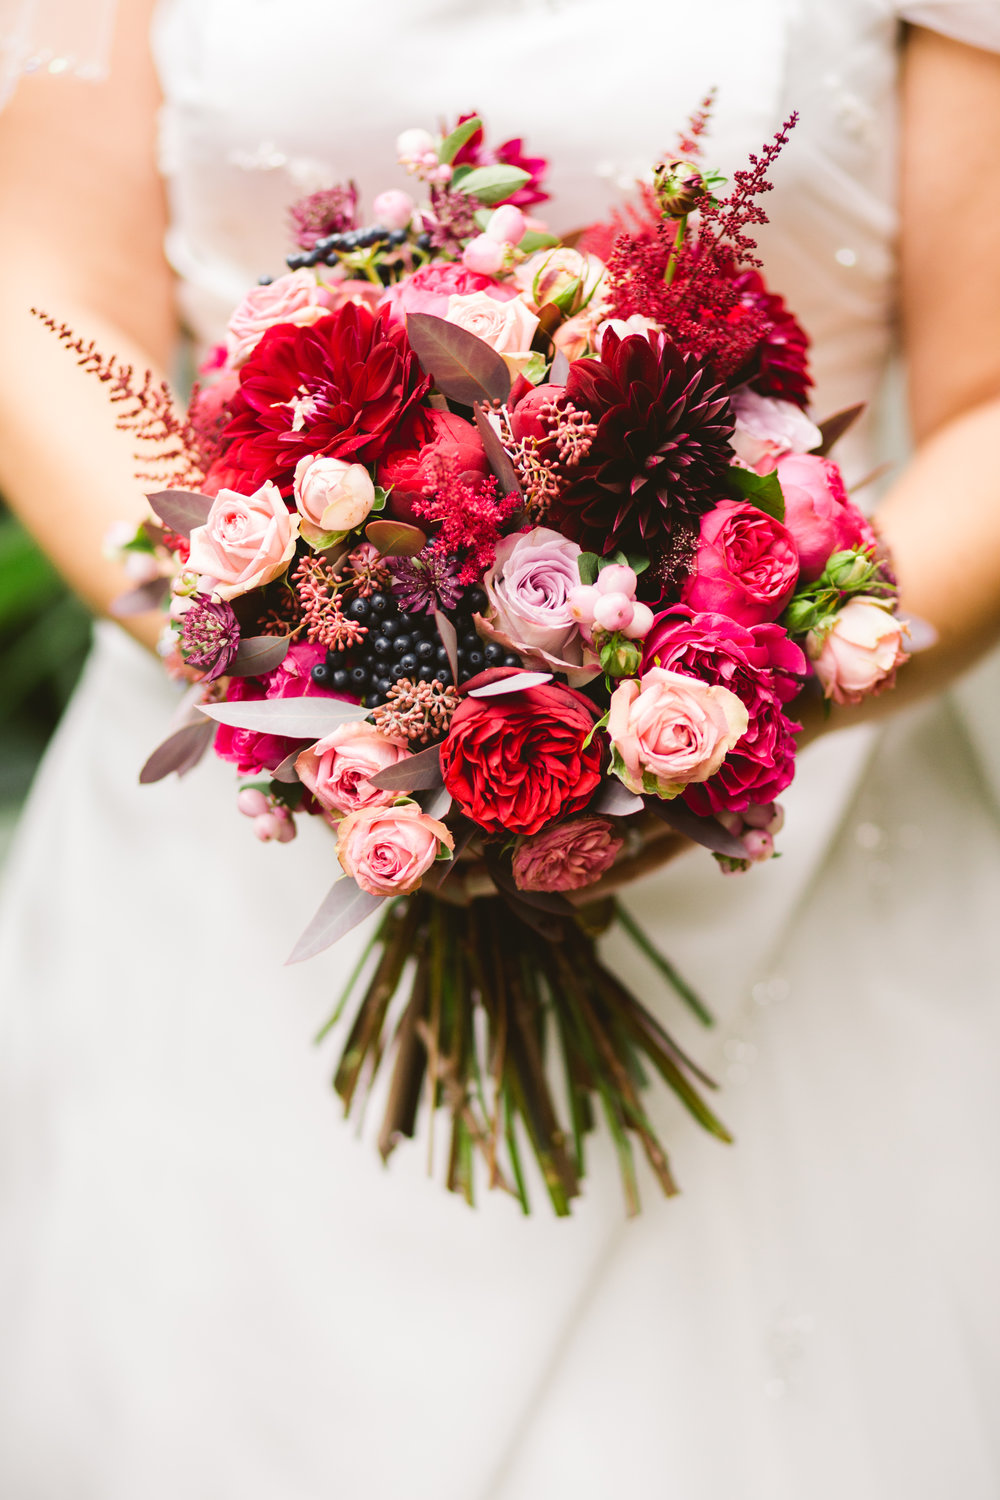 Weddings and Other Events - WE LOVE WEDDING SEASON!Come in and lets talk the next party!